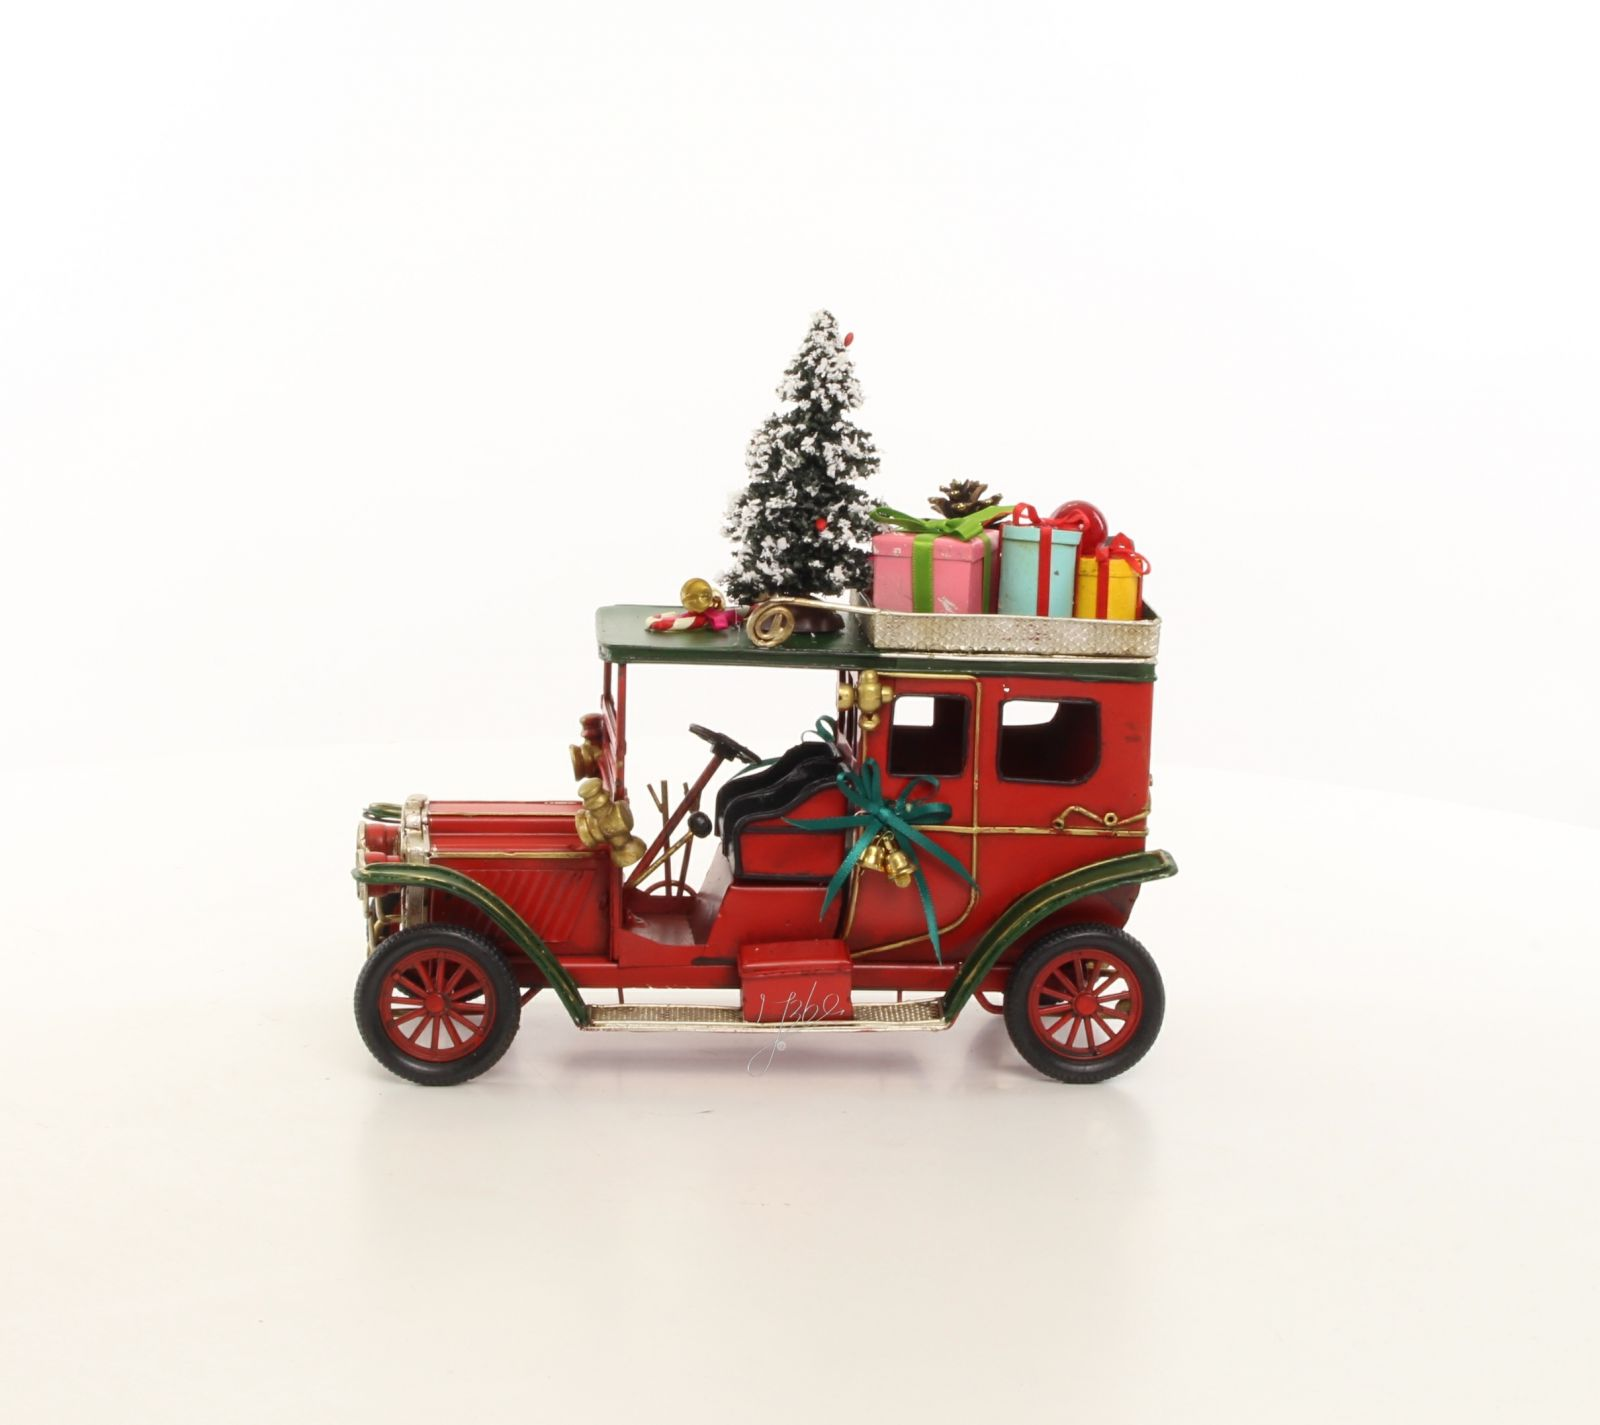 A TIN MODEL OF AN OLDTIMER CAR IN CHRISTMAS STYLE